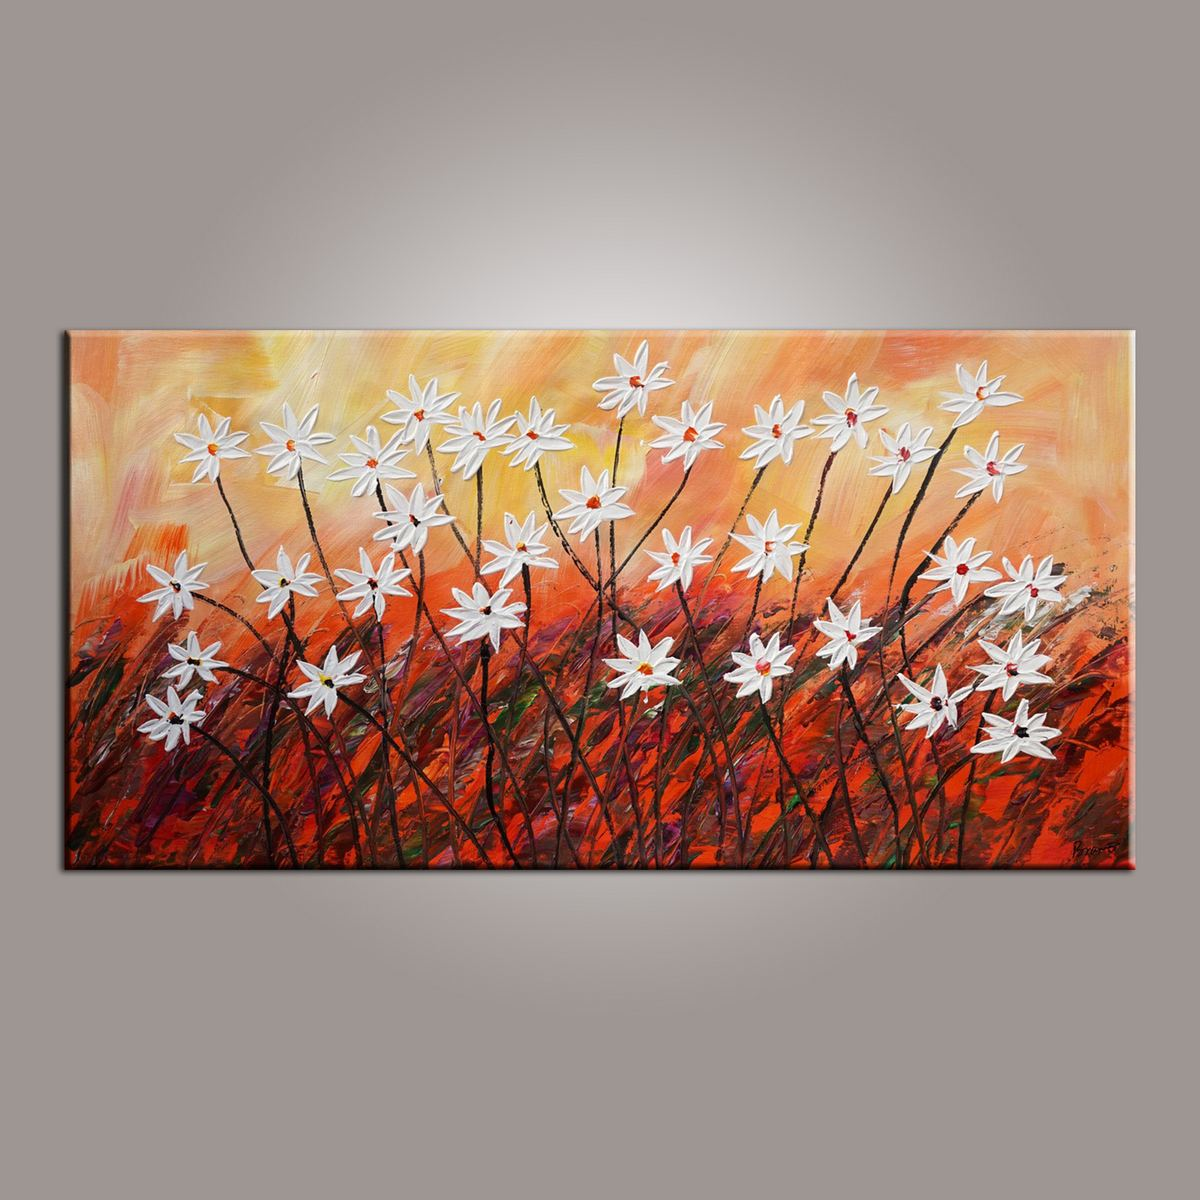 Flower Art, Abstract Art Painting, Acrylic Painting, Wall Painting, Canvas Wall Art, Bedroom Wall Art, Canvas Art, Modern Art, Contemporary Art